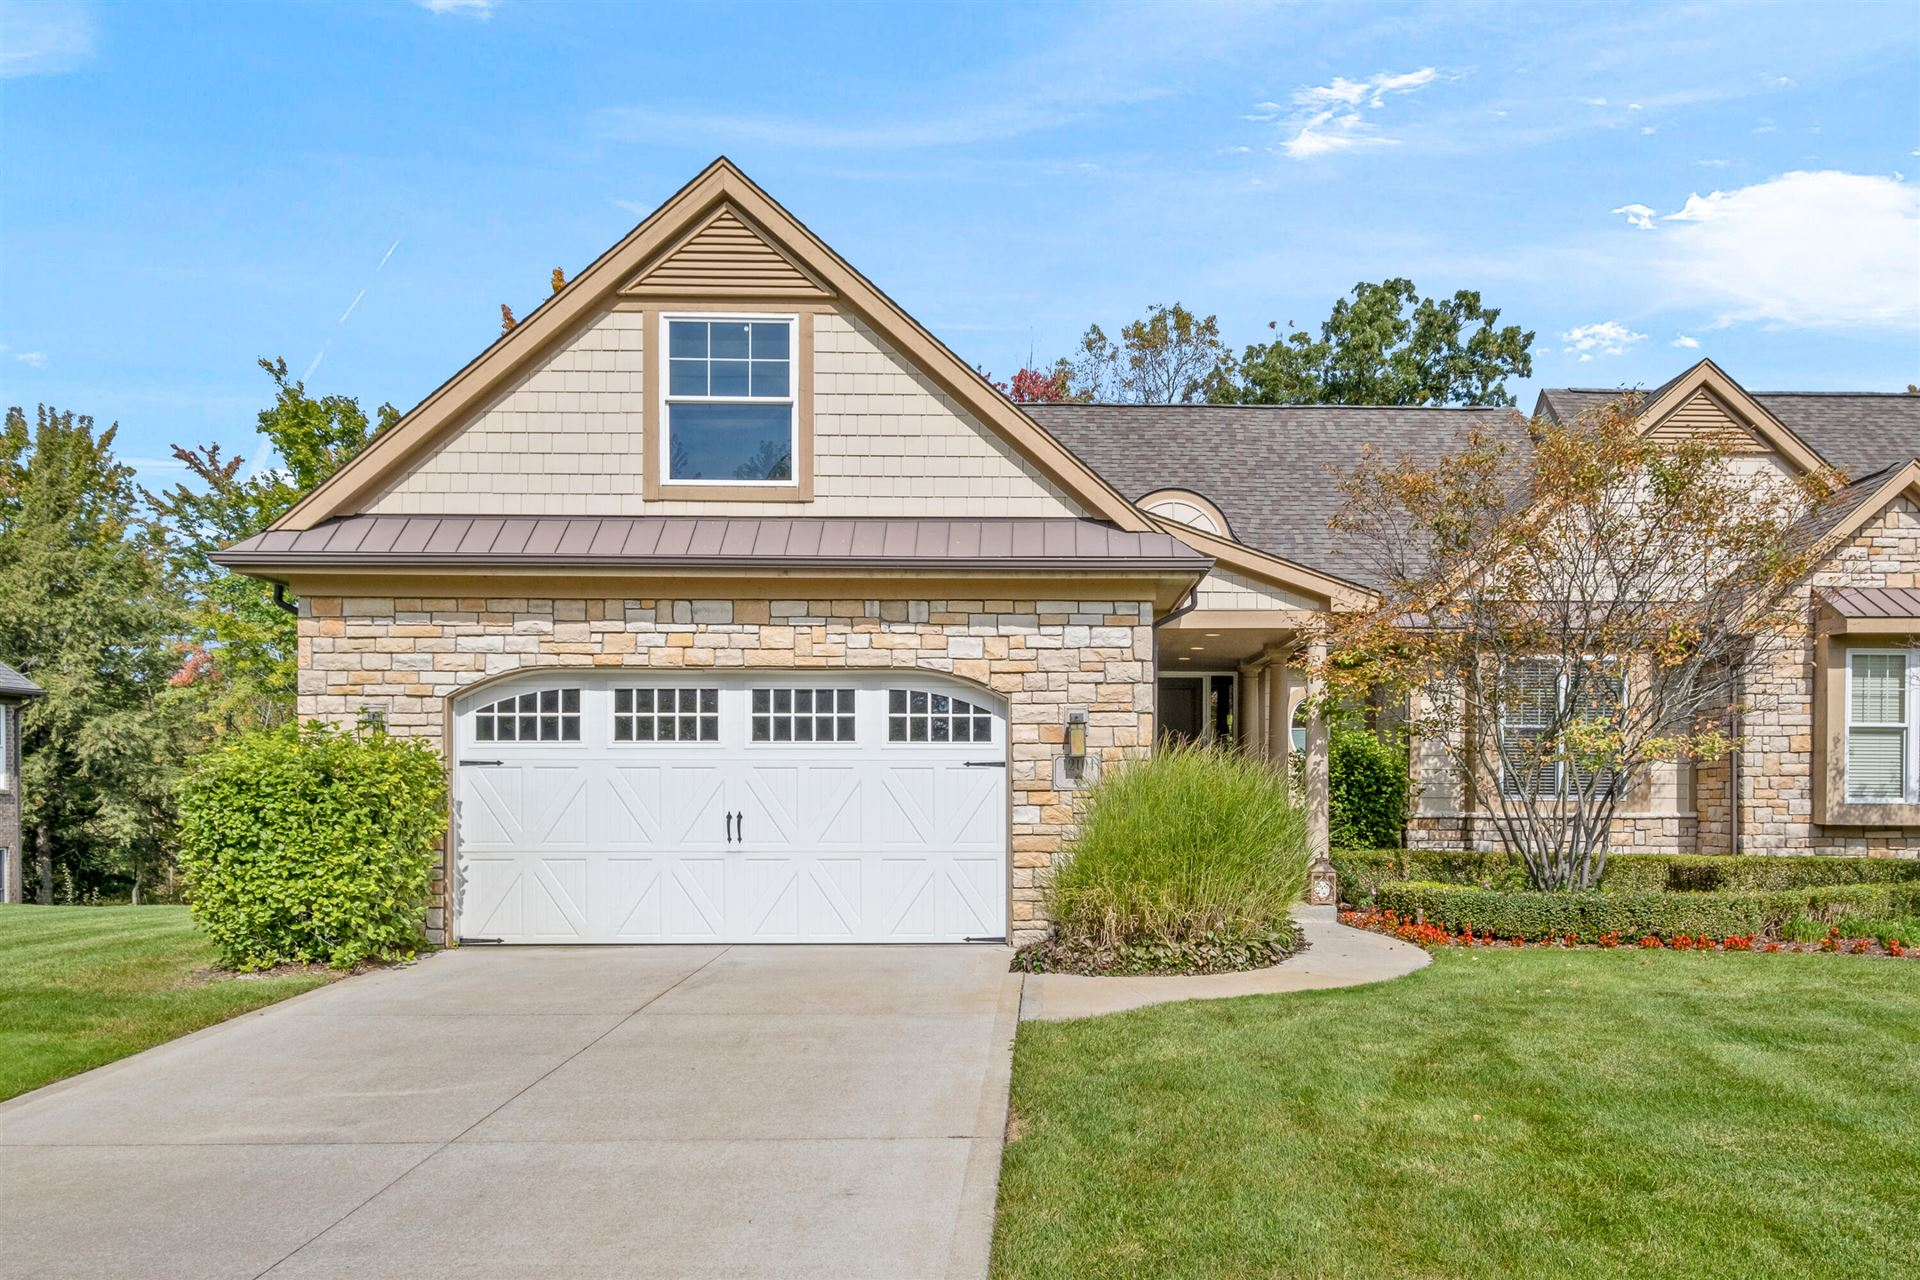 12104 Tullymore Drive, Canadian Lakes, MI 49346 - MLS#: 21108849